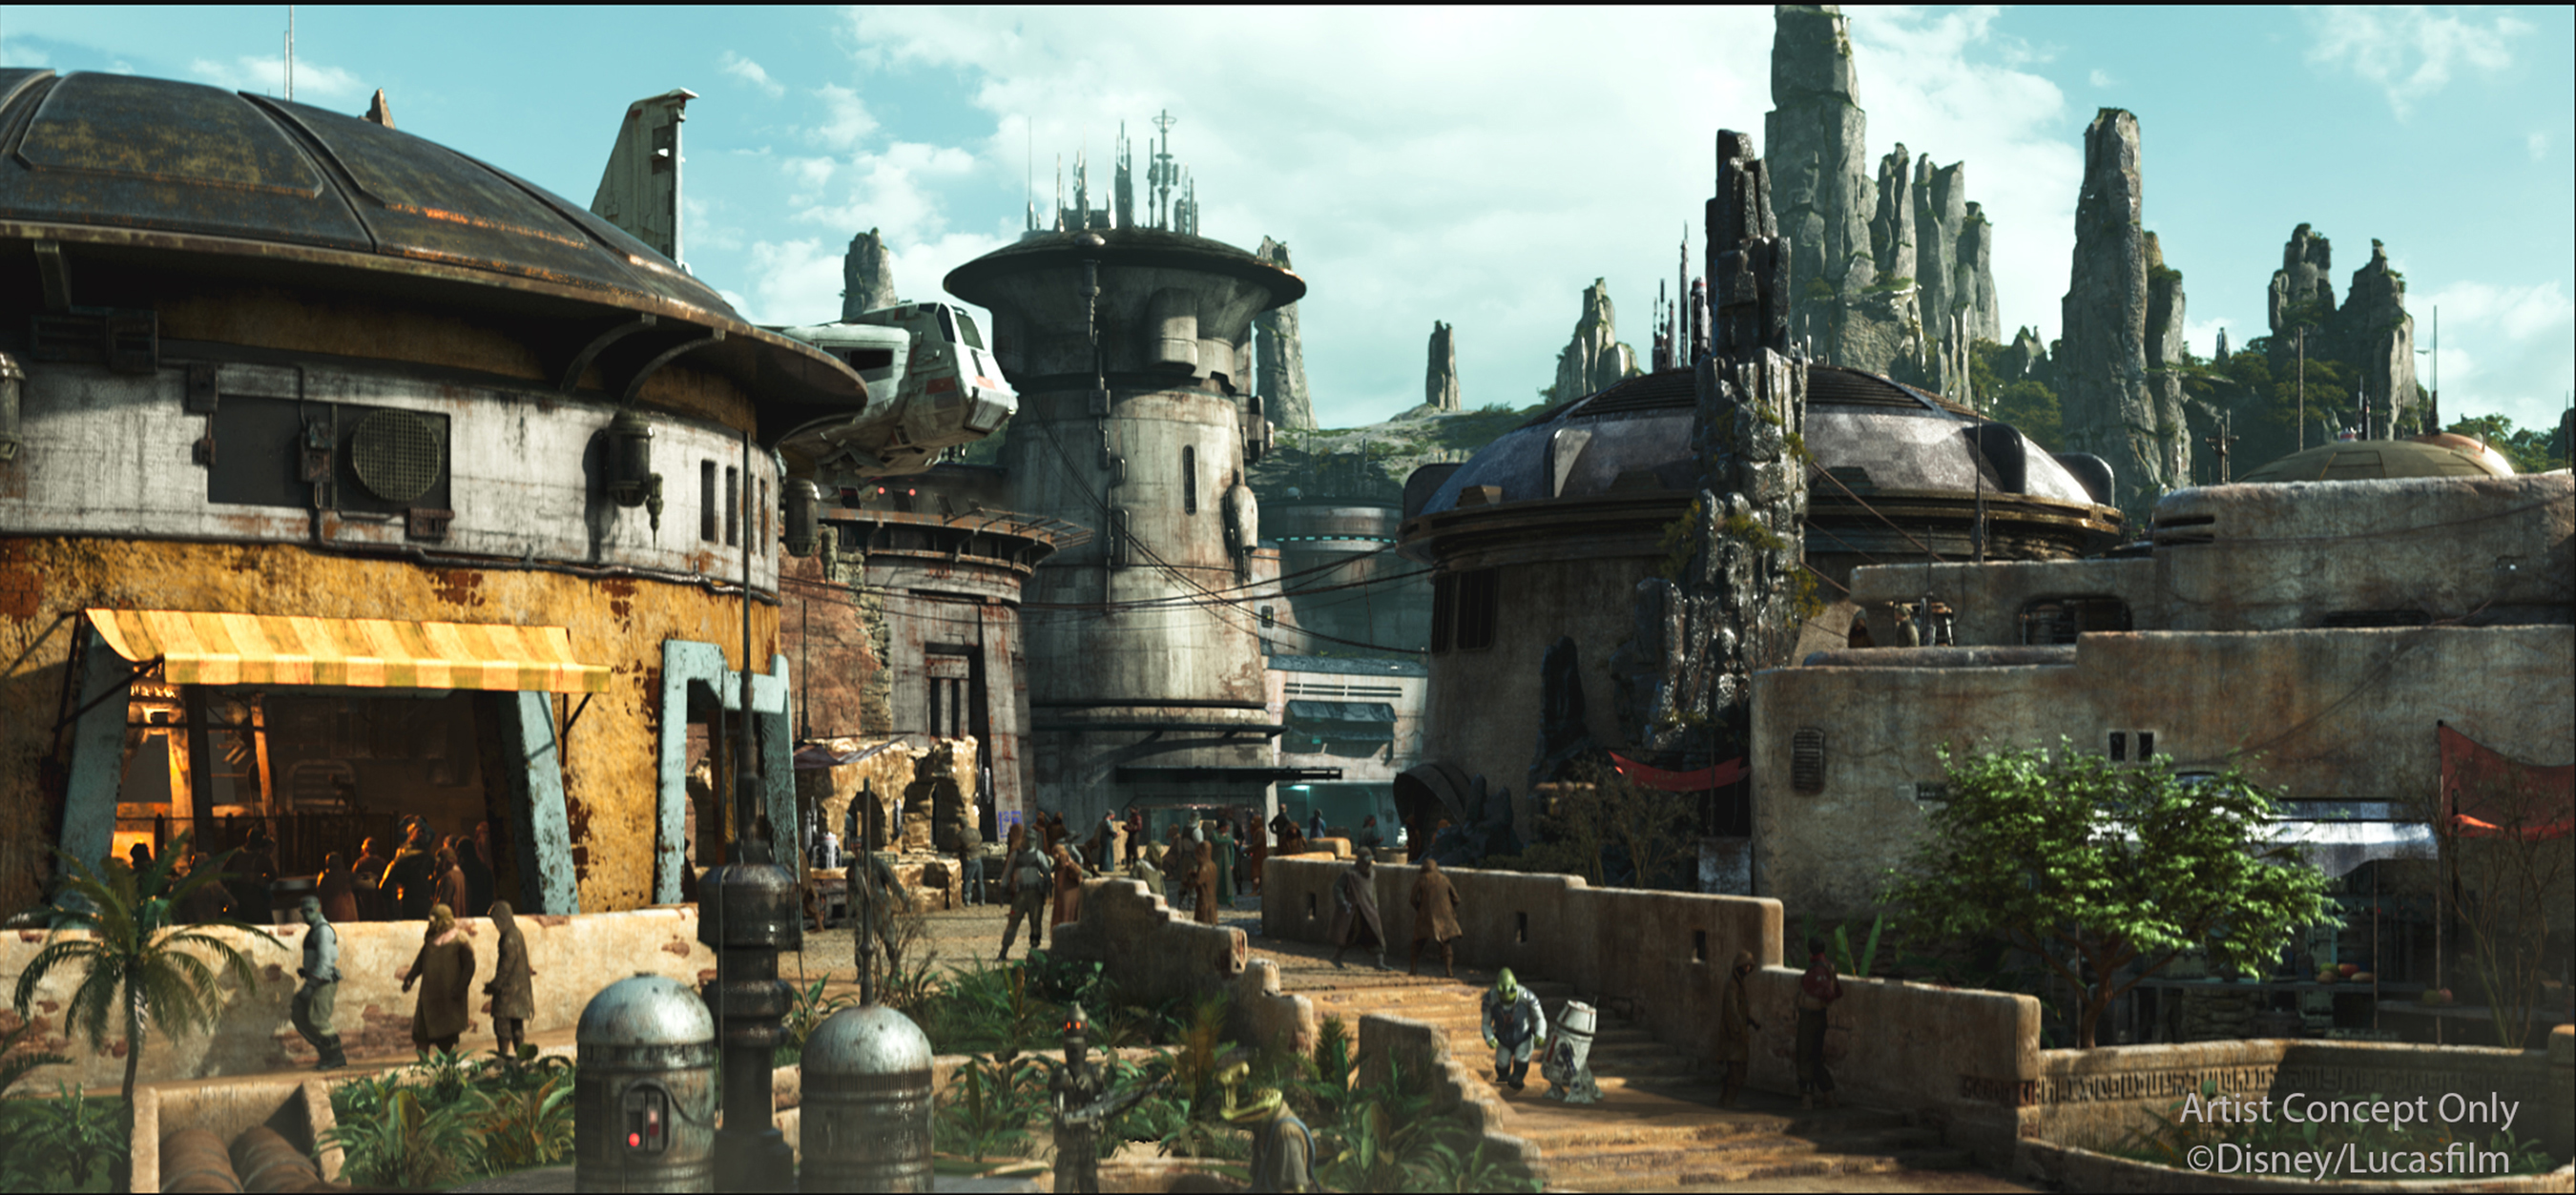 Star Wars Land Planning Disneyland|Star Wars Land Planning Disney World